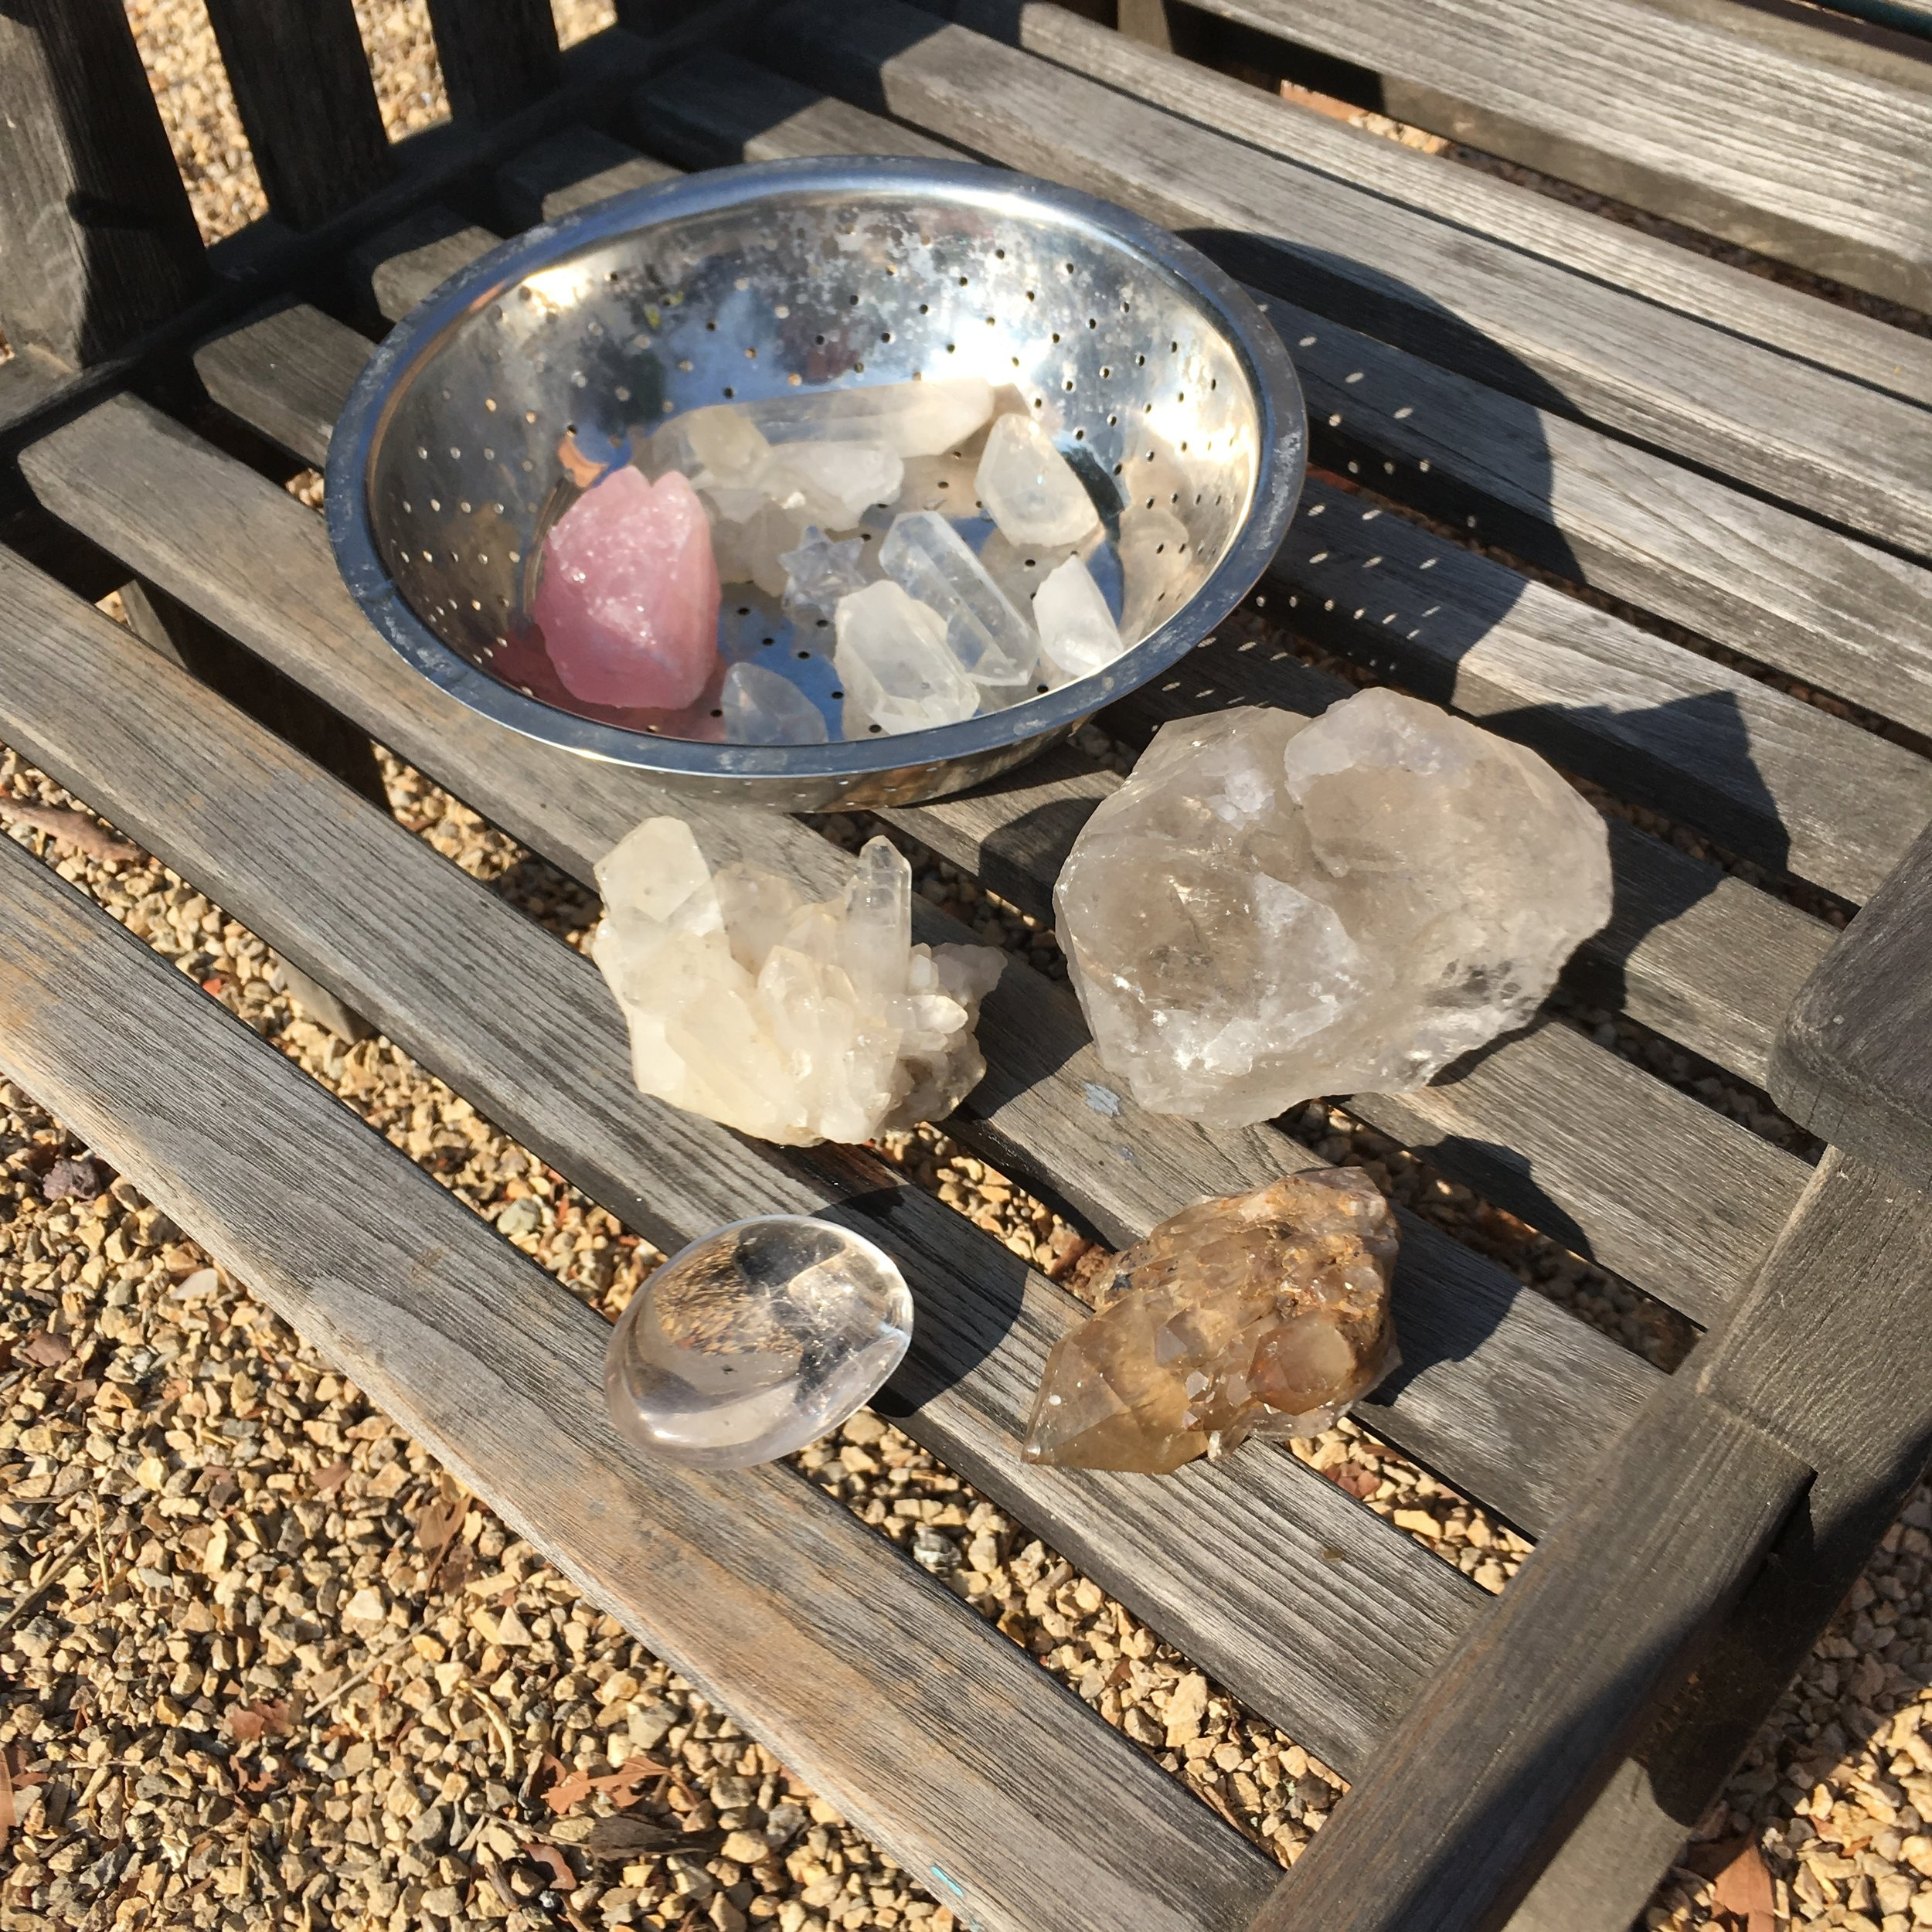 crystals - drying in the morning sun after their bath